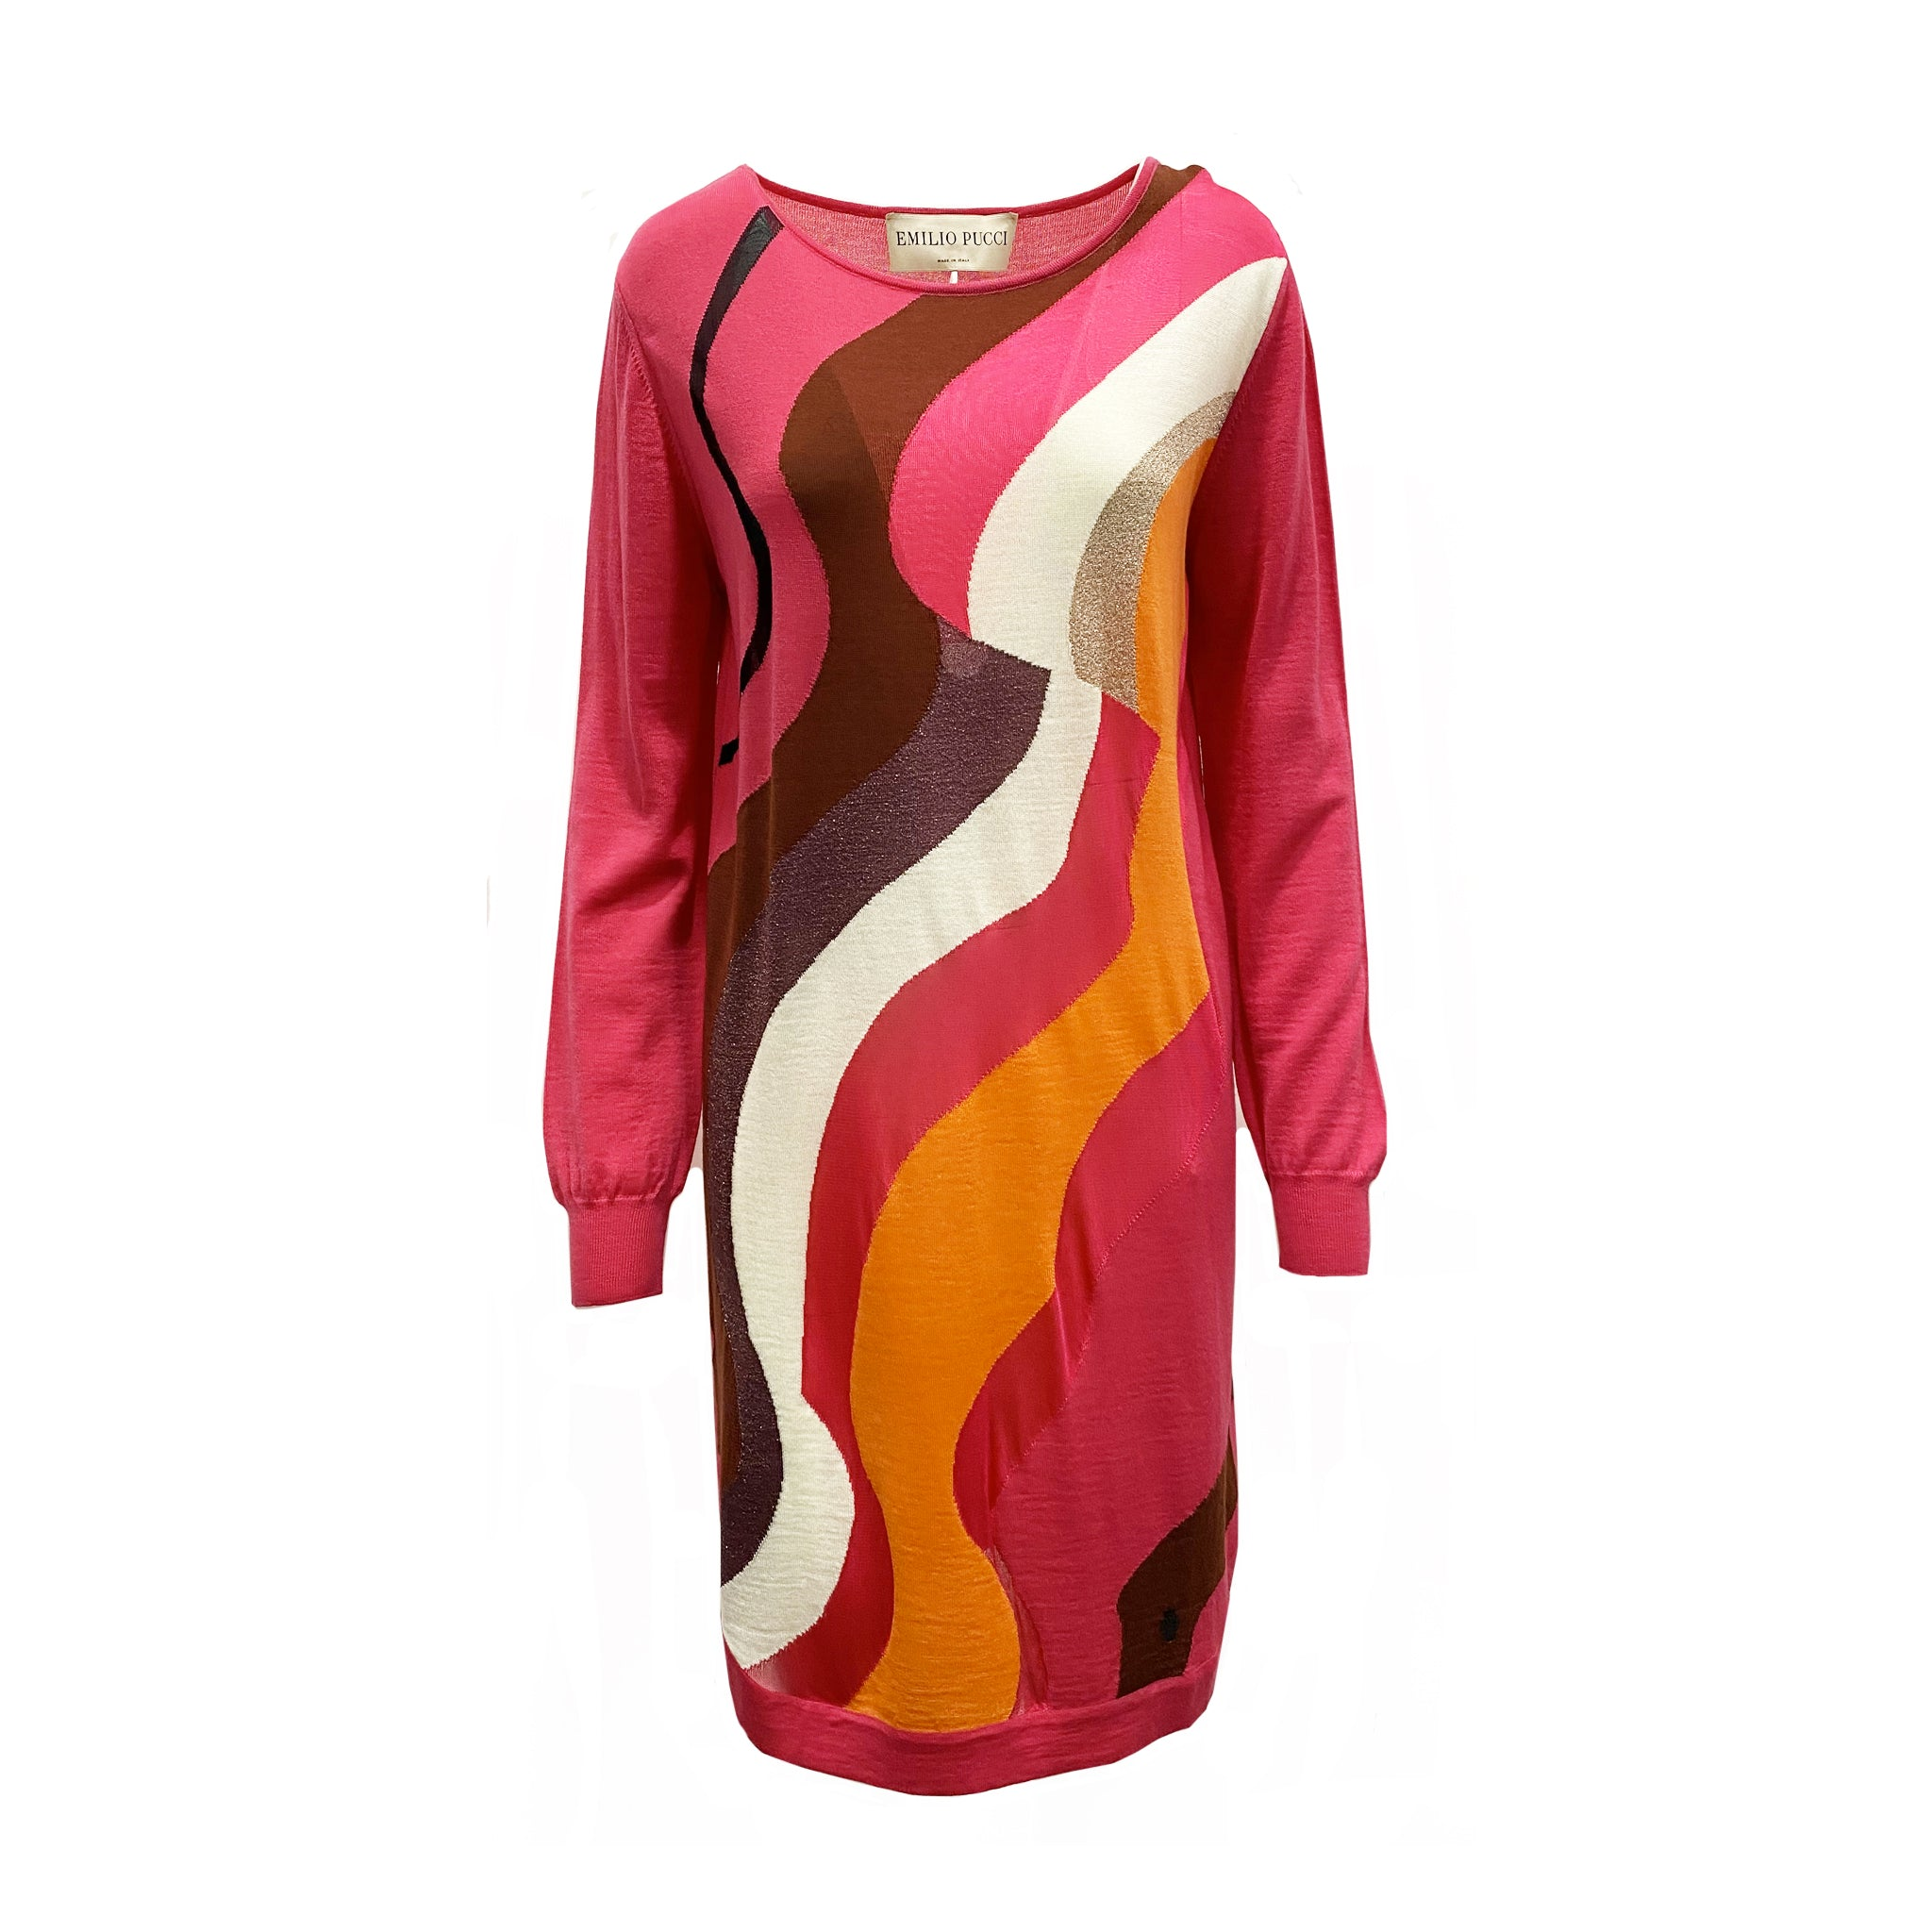 Emilio Pucci Knitted Wool Blend Dress